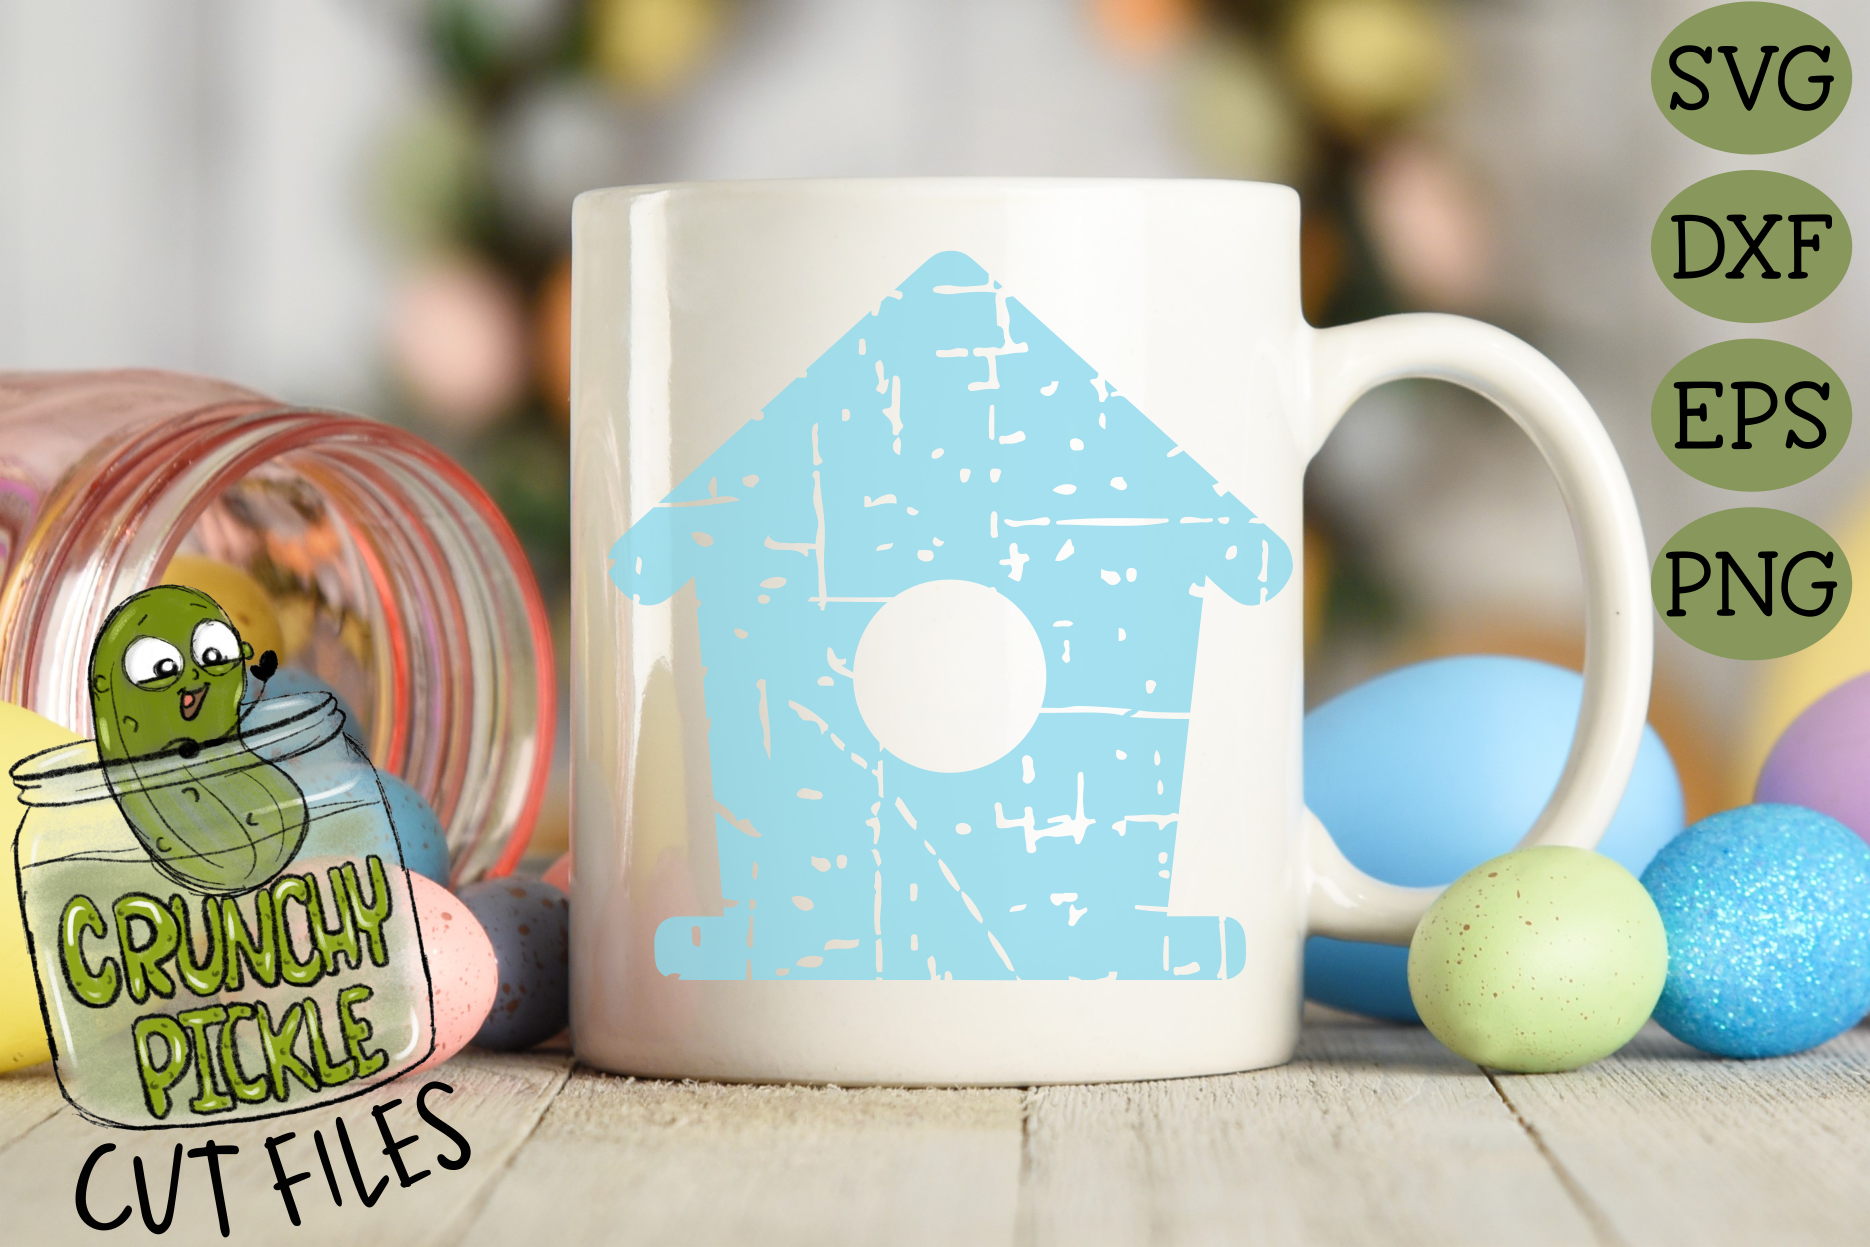 Plaid & Grunge Birdhouse SVG Cut File for Spring or Easter example image 3